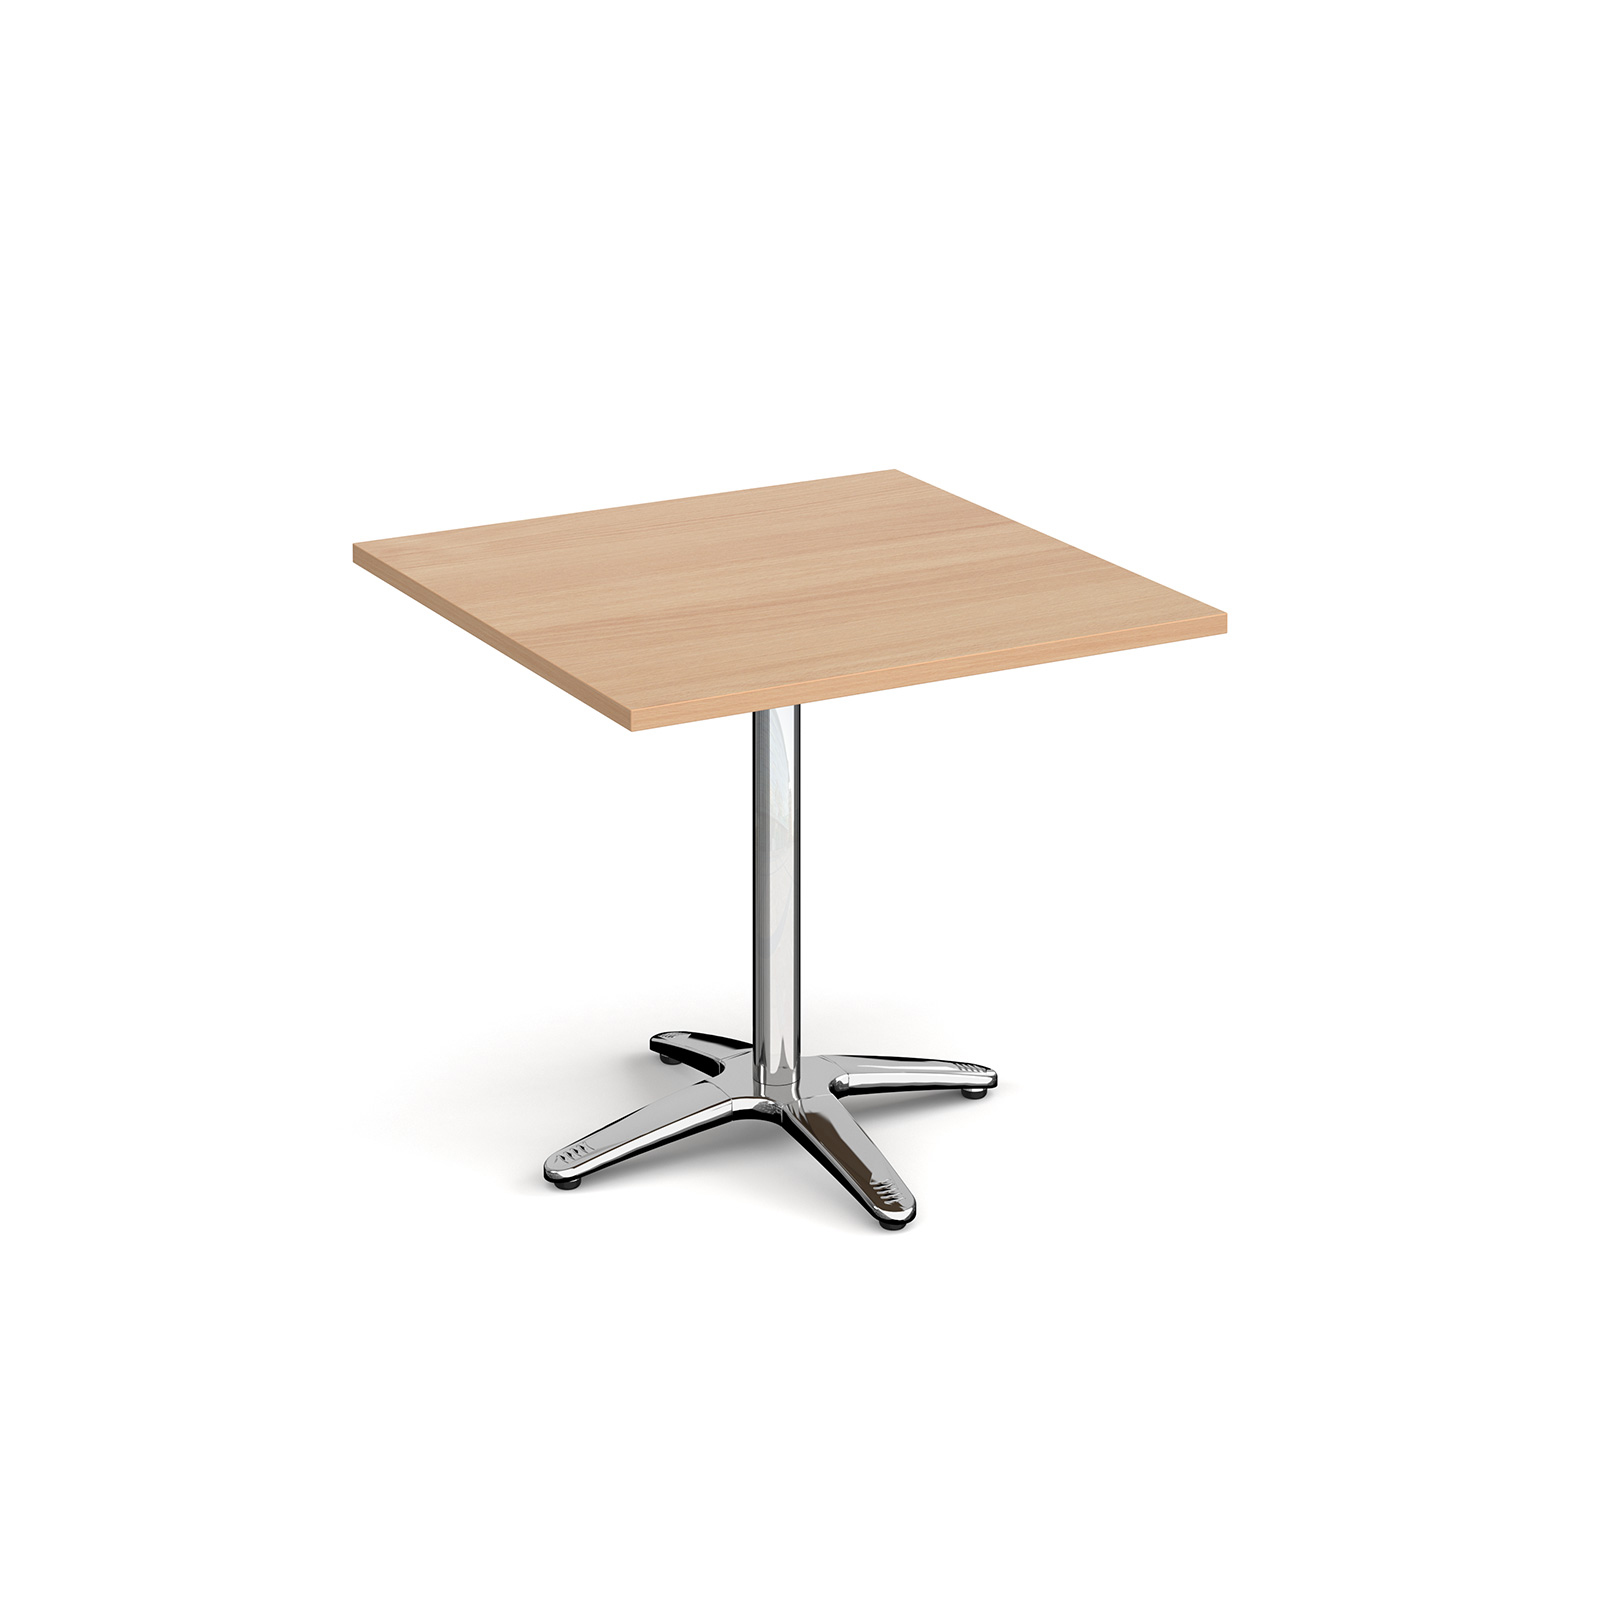 Canteen / Dining Roma square dining table with 4 leg base